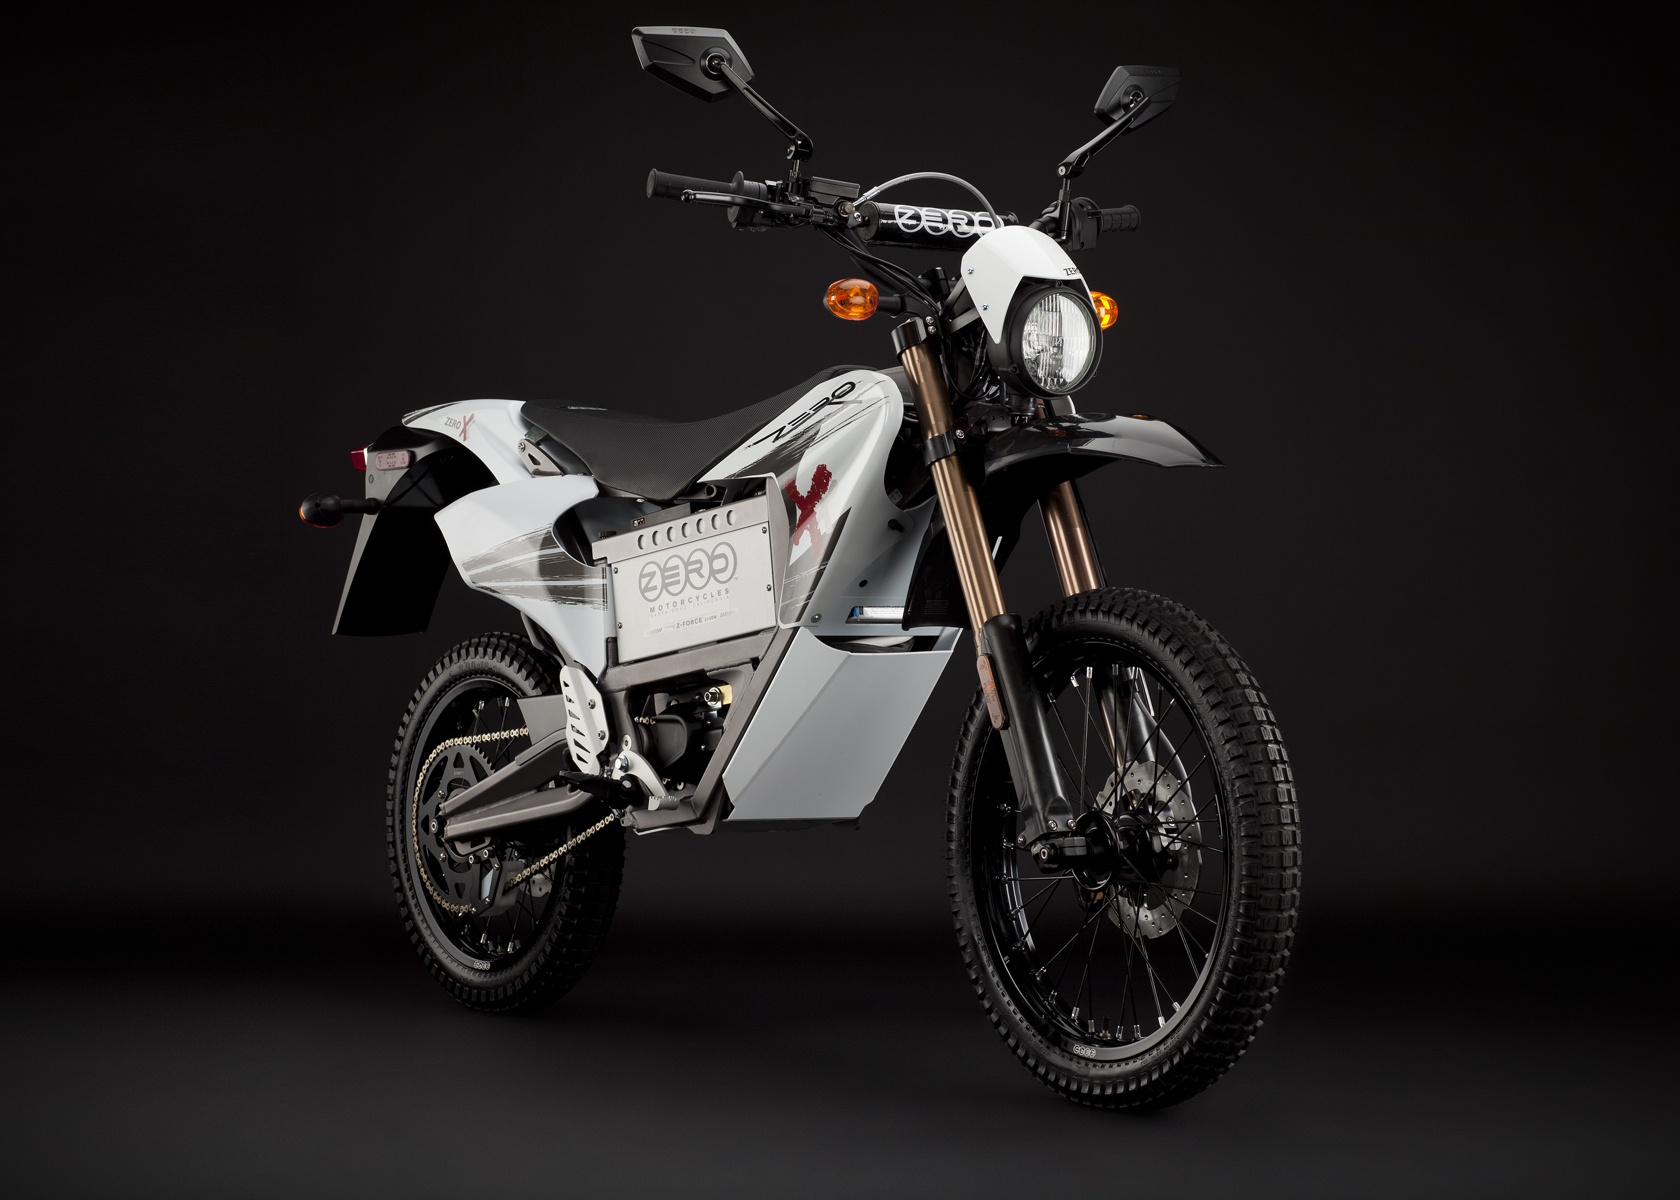 '.2011 Zero X Electric Motorcycle: Angle Right, Street Legal Model.'